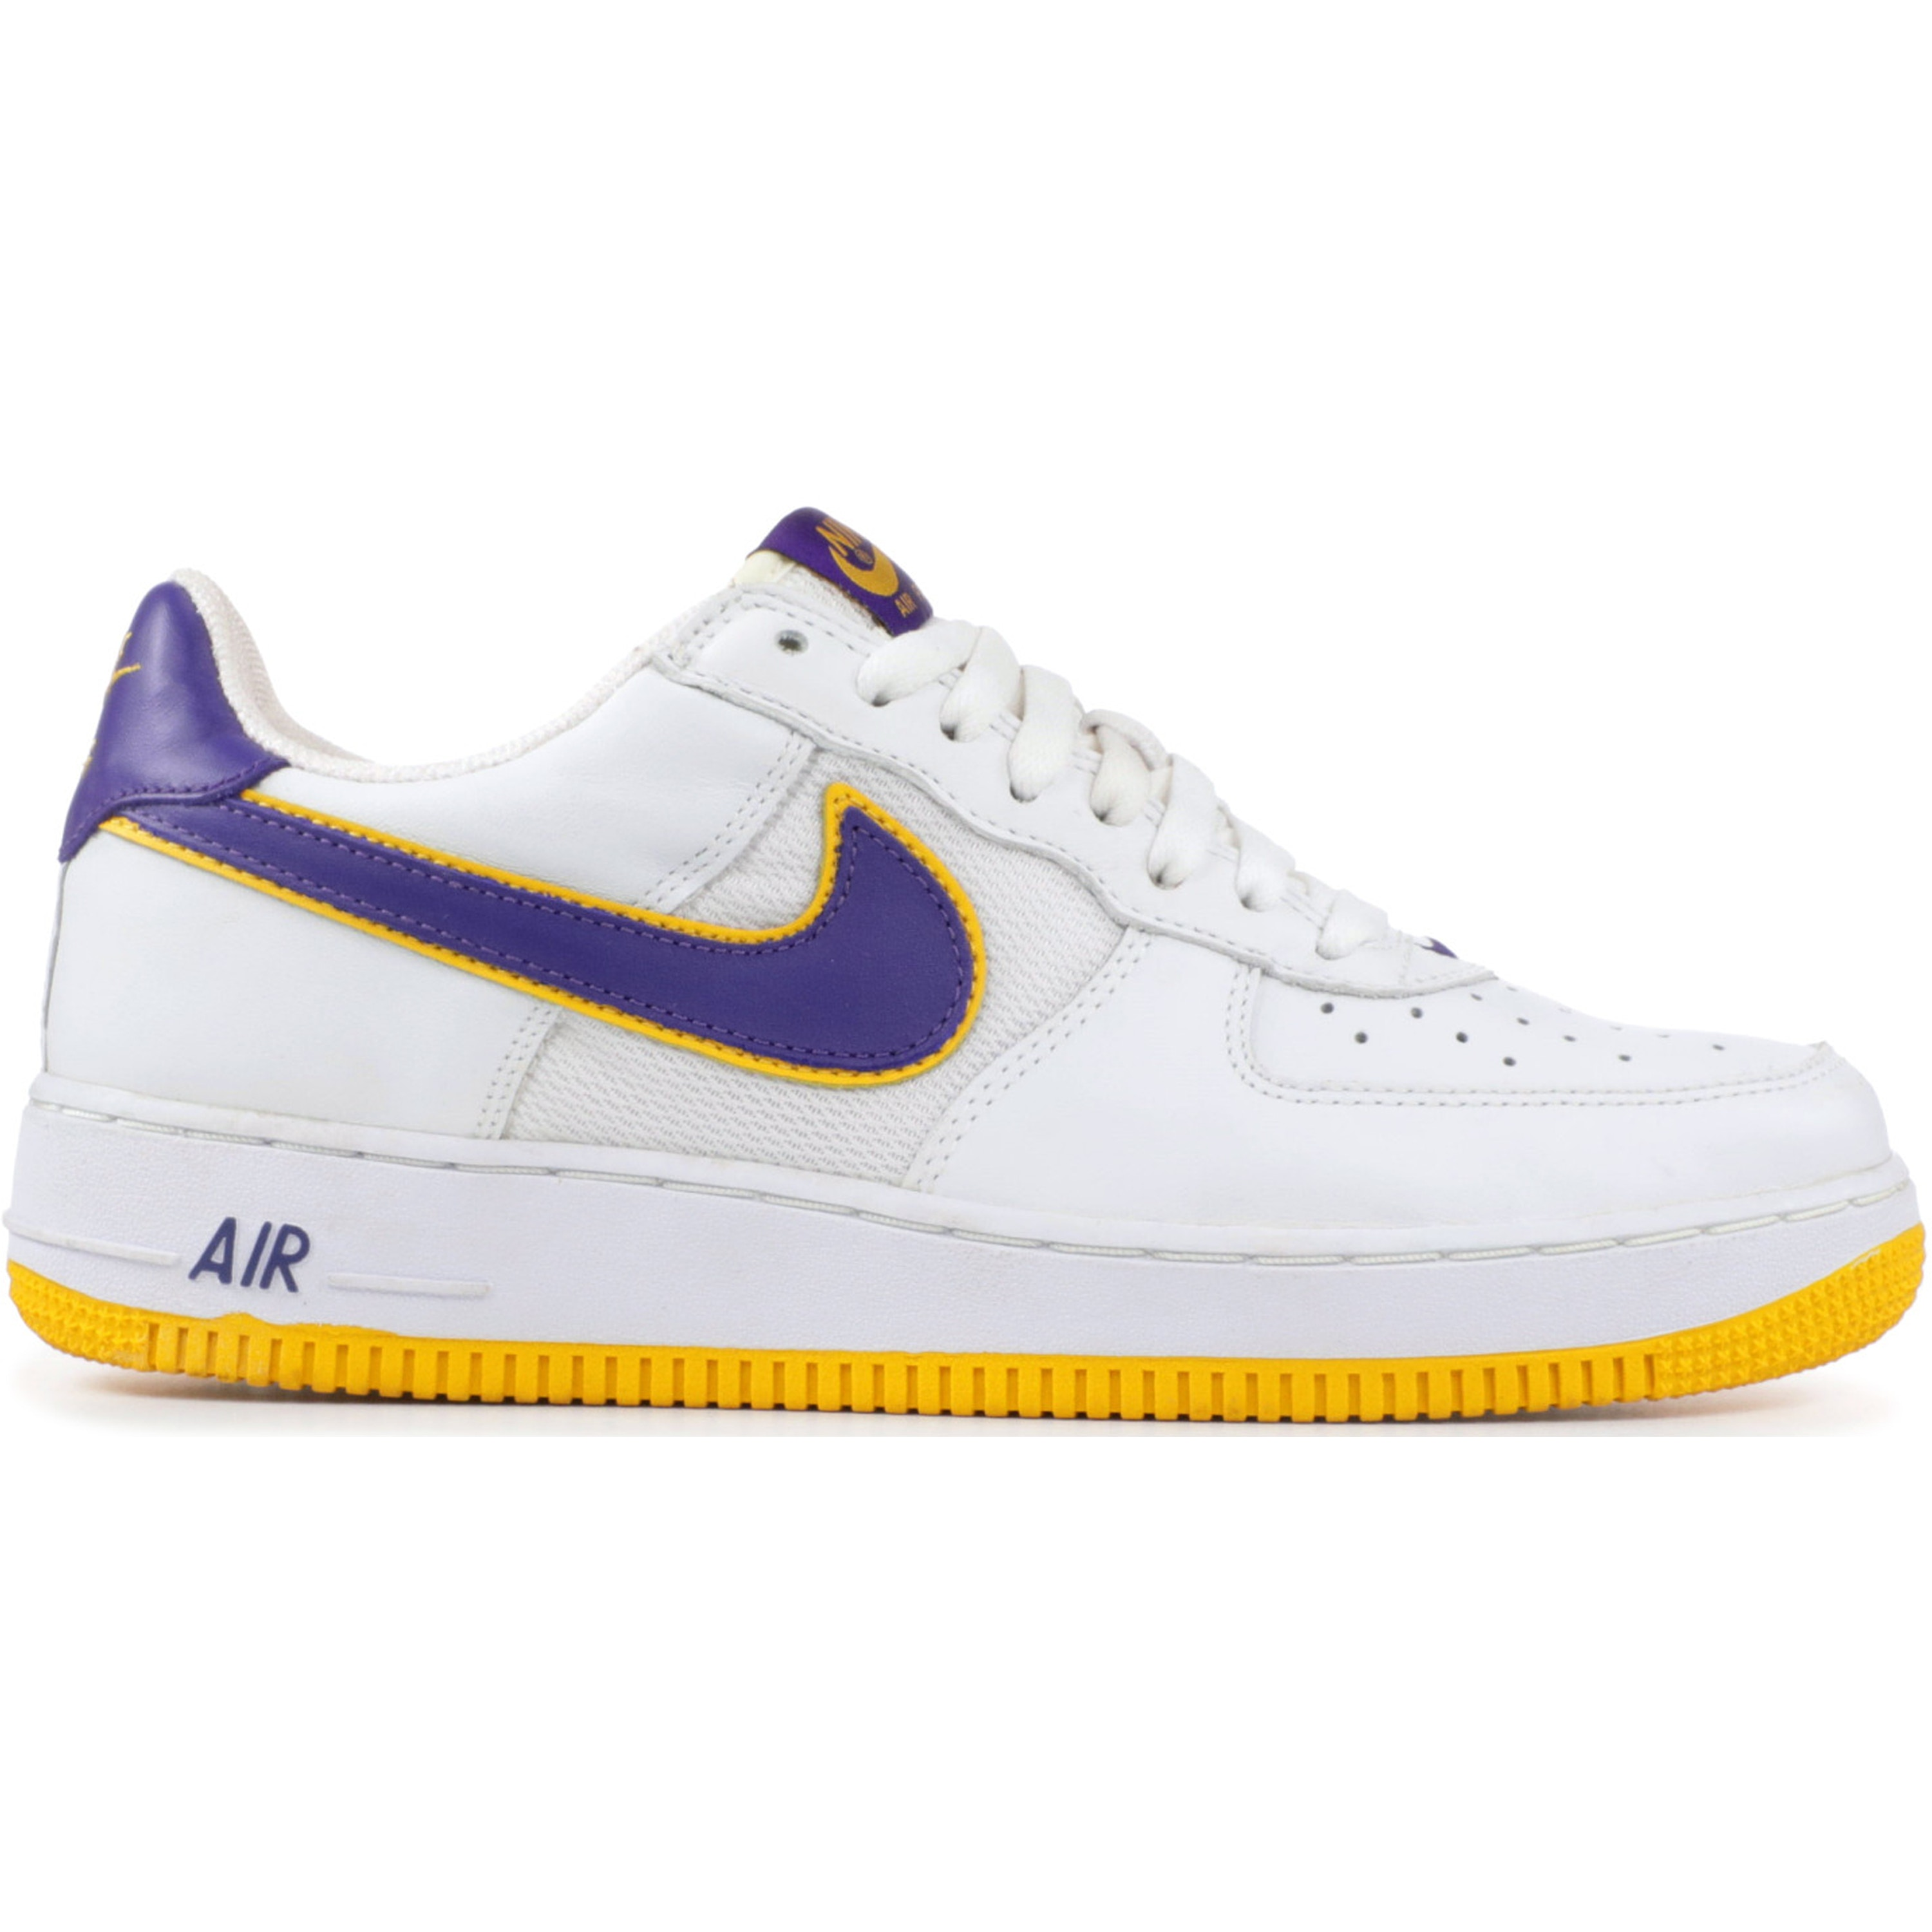 Nike Air Force 1 Low White Grape Ice Varsity Maize (306509-151)